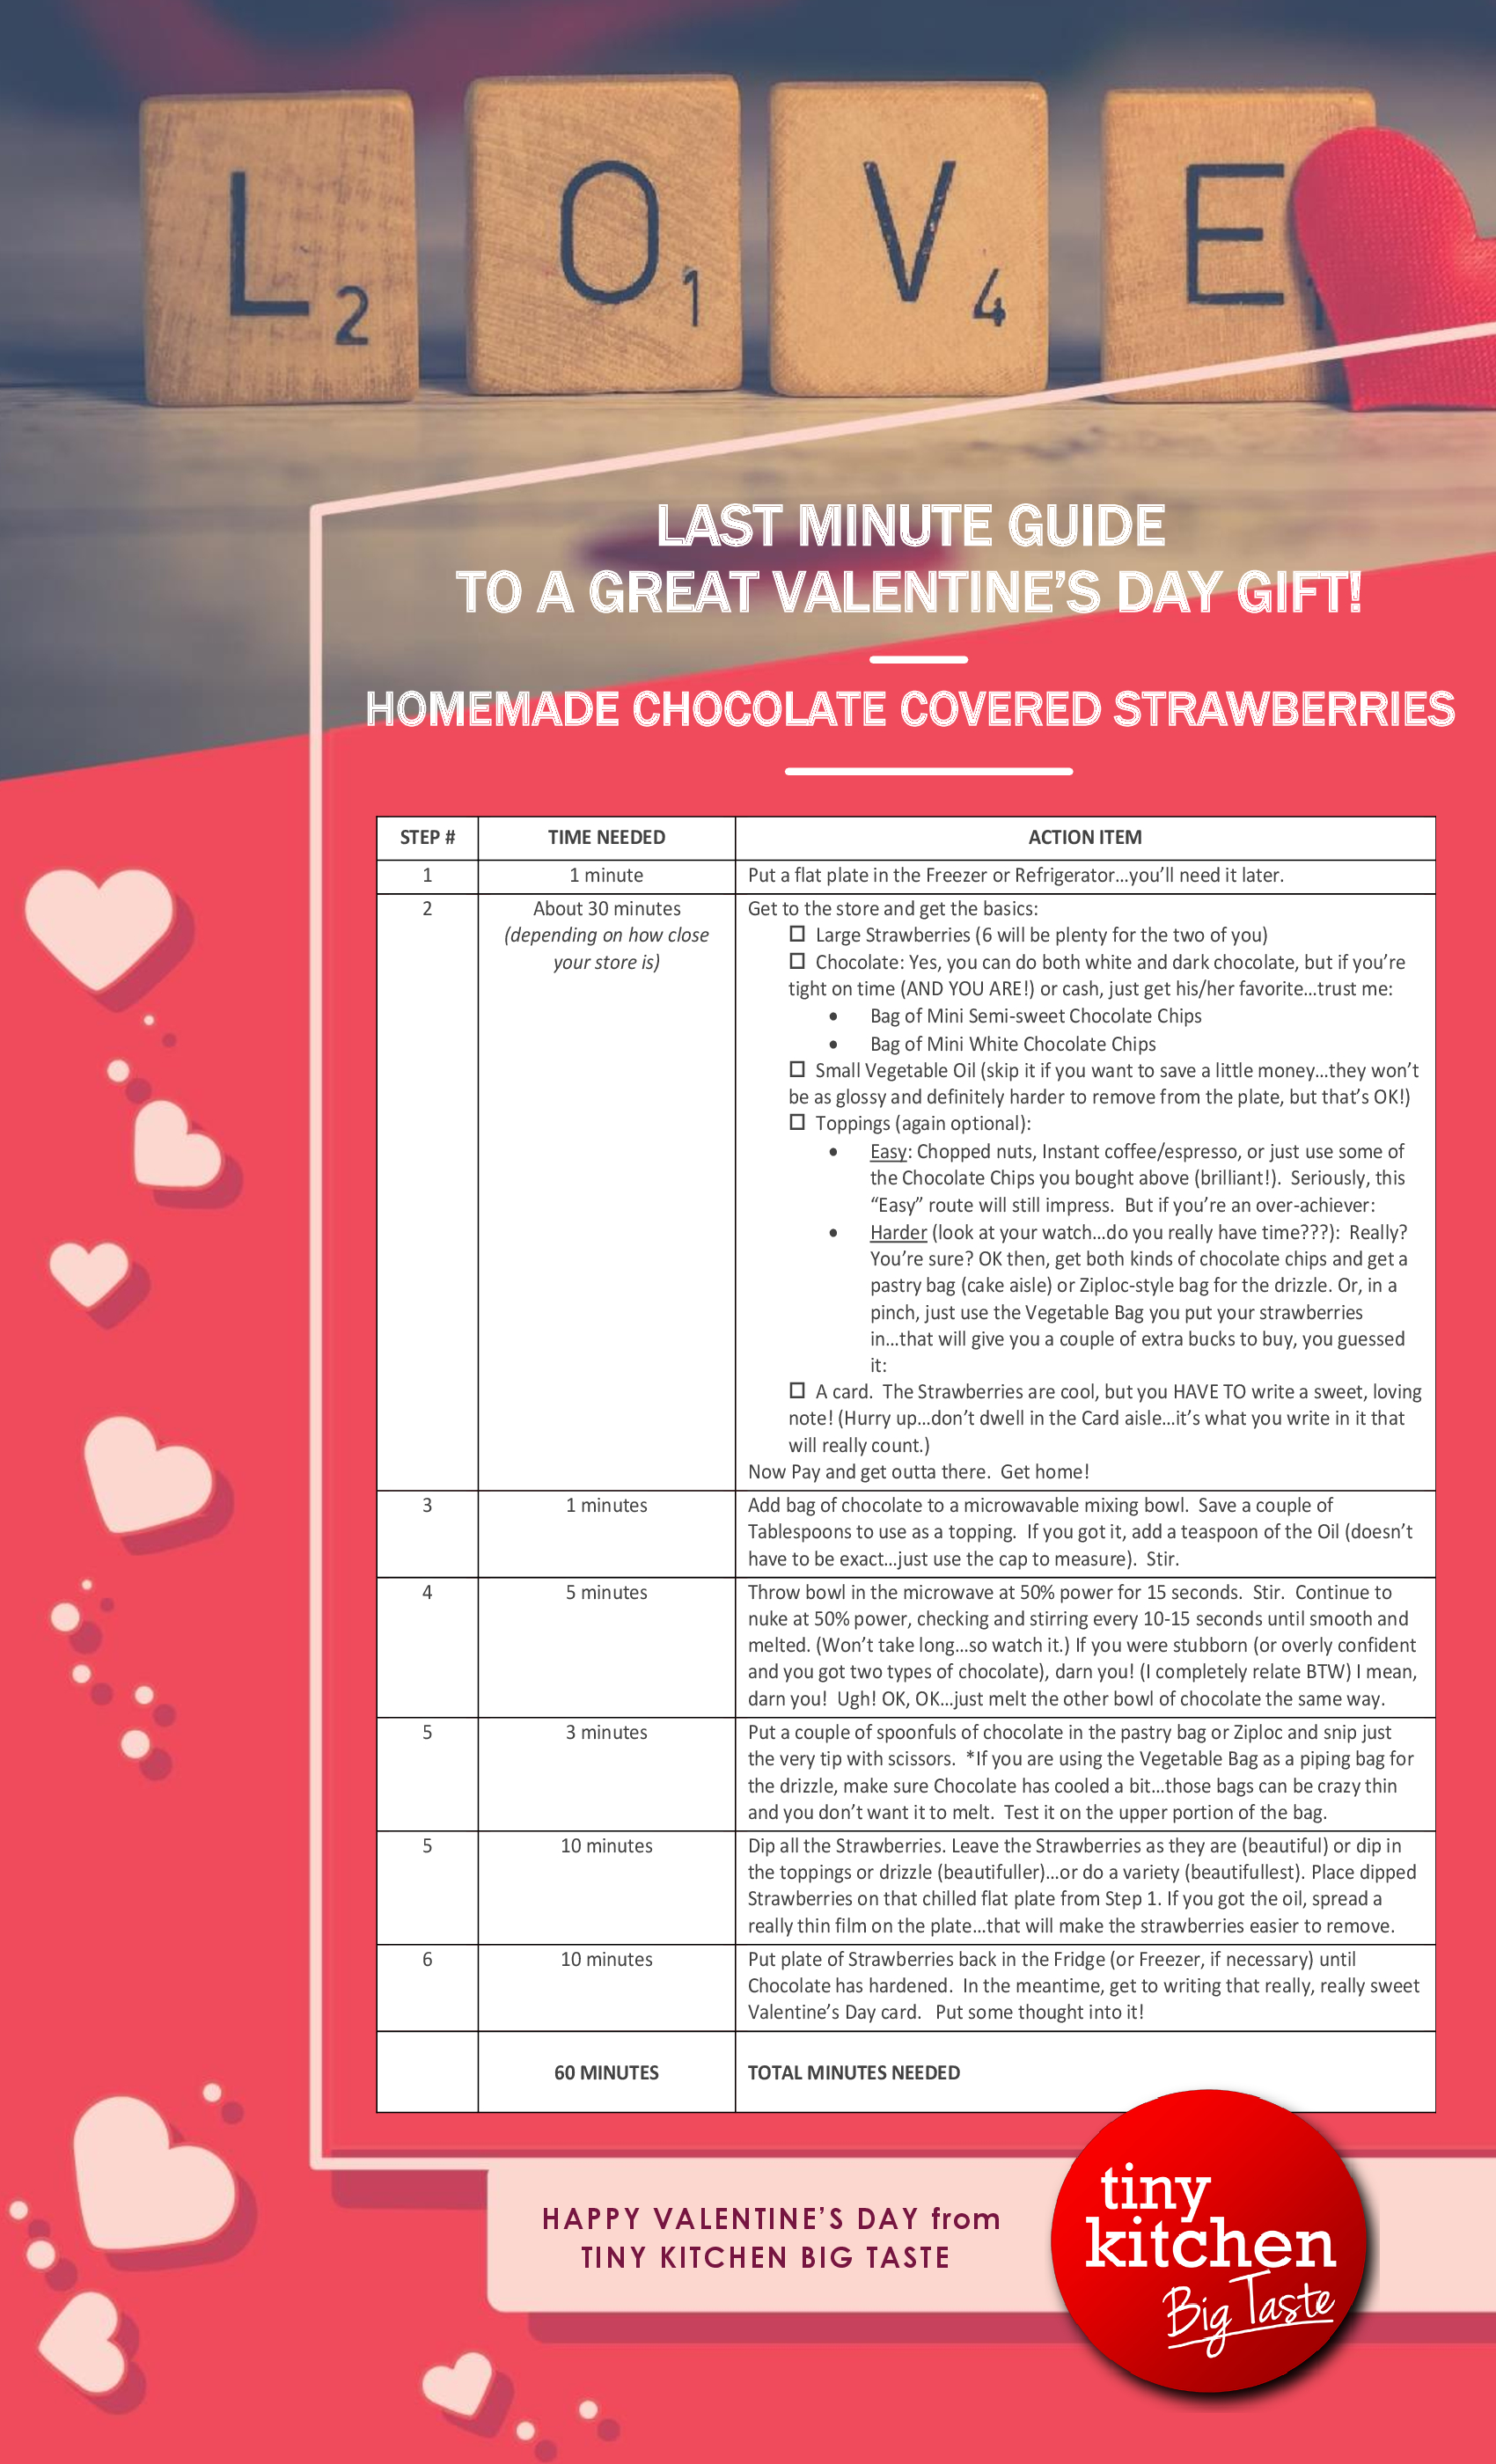 Last Minute Guide to a Great Valentine's Day Gift // Tiny Kitchen Big Taste